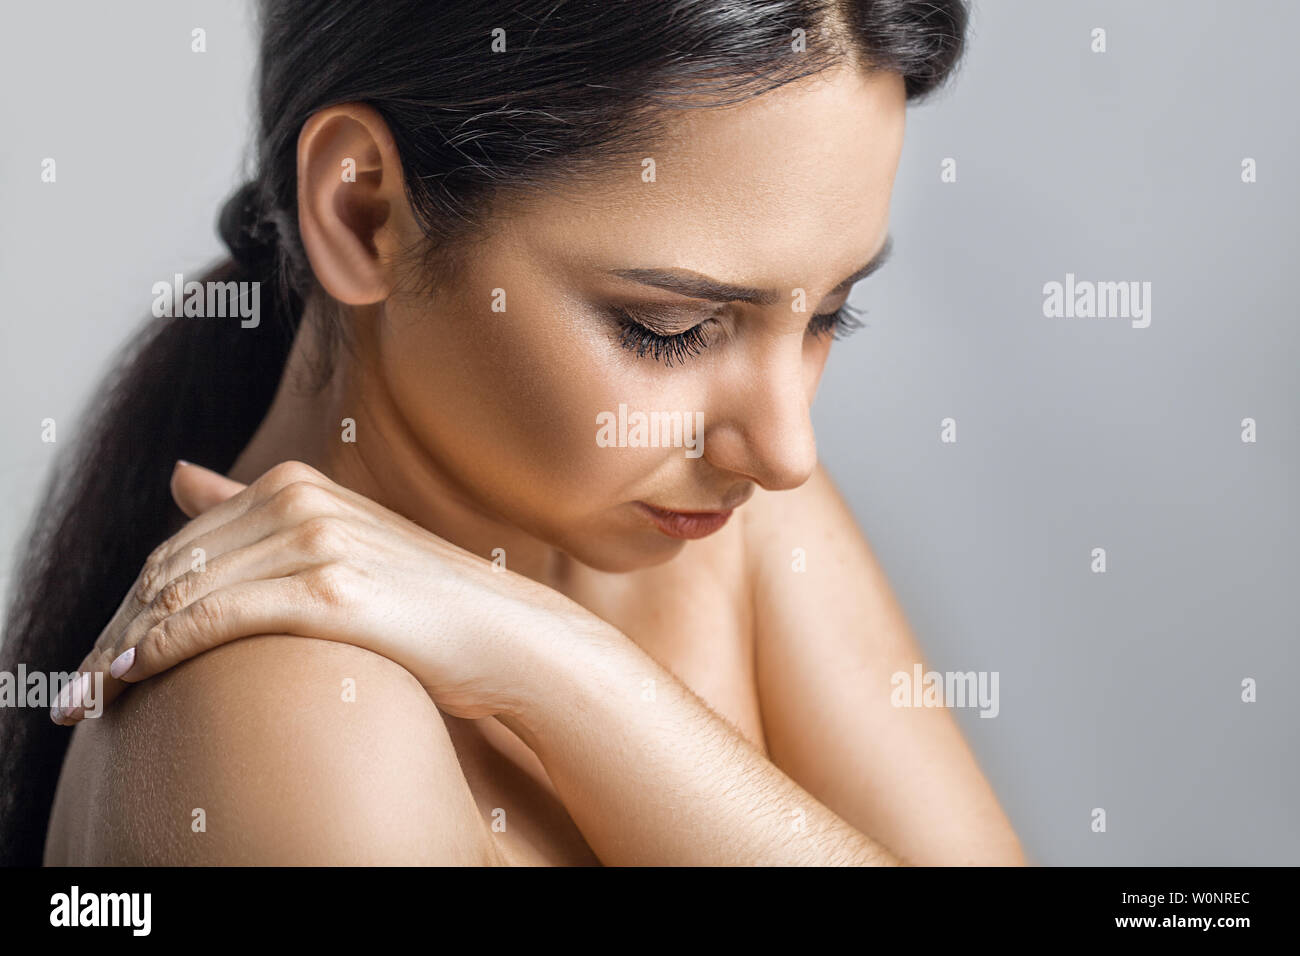 Heart Health Care. Closeup Of Young Woman Feeling Strong Pain In Chest. Close-up Of Female Body With Hand On Chest. Girl Suffering From Painful - Stock Image